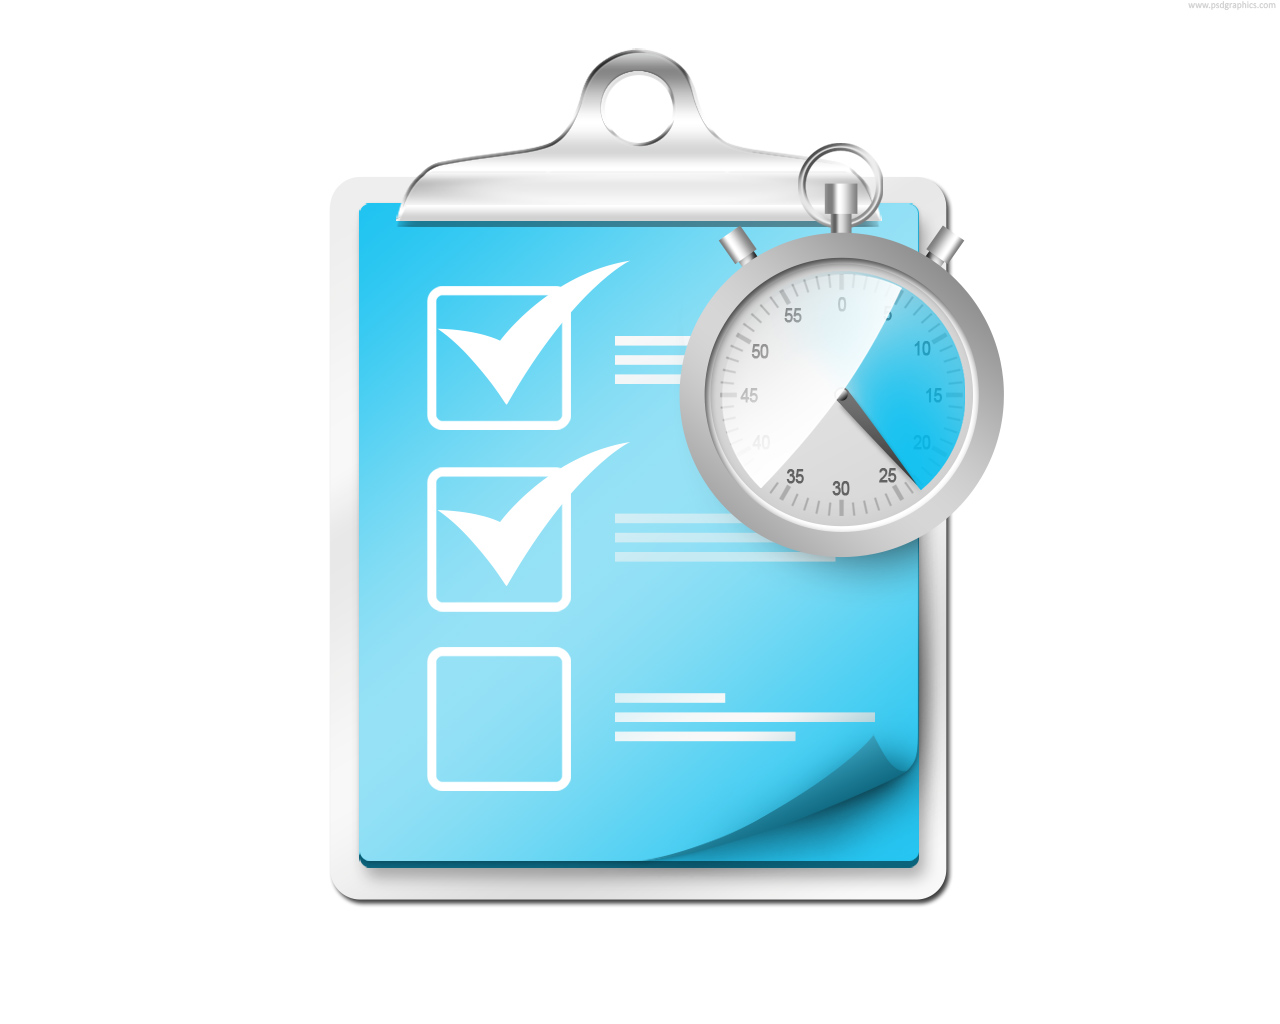 Check List Icon Checklist With Stopwatch Icon image #1436